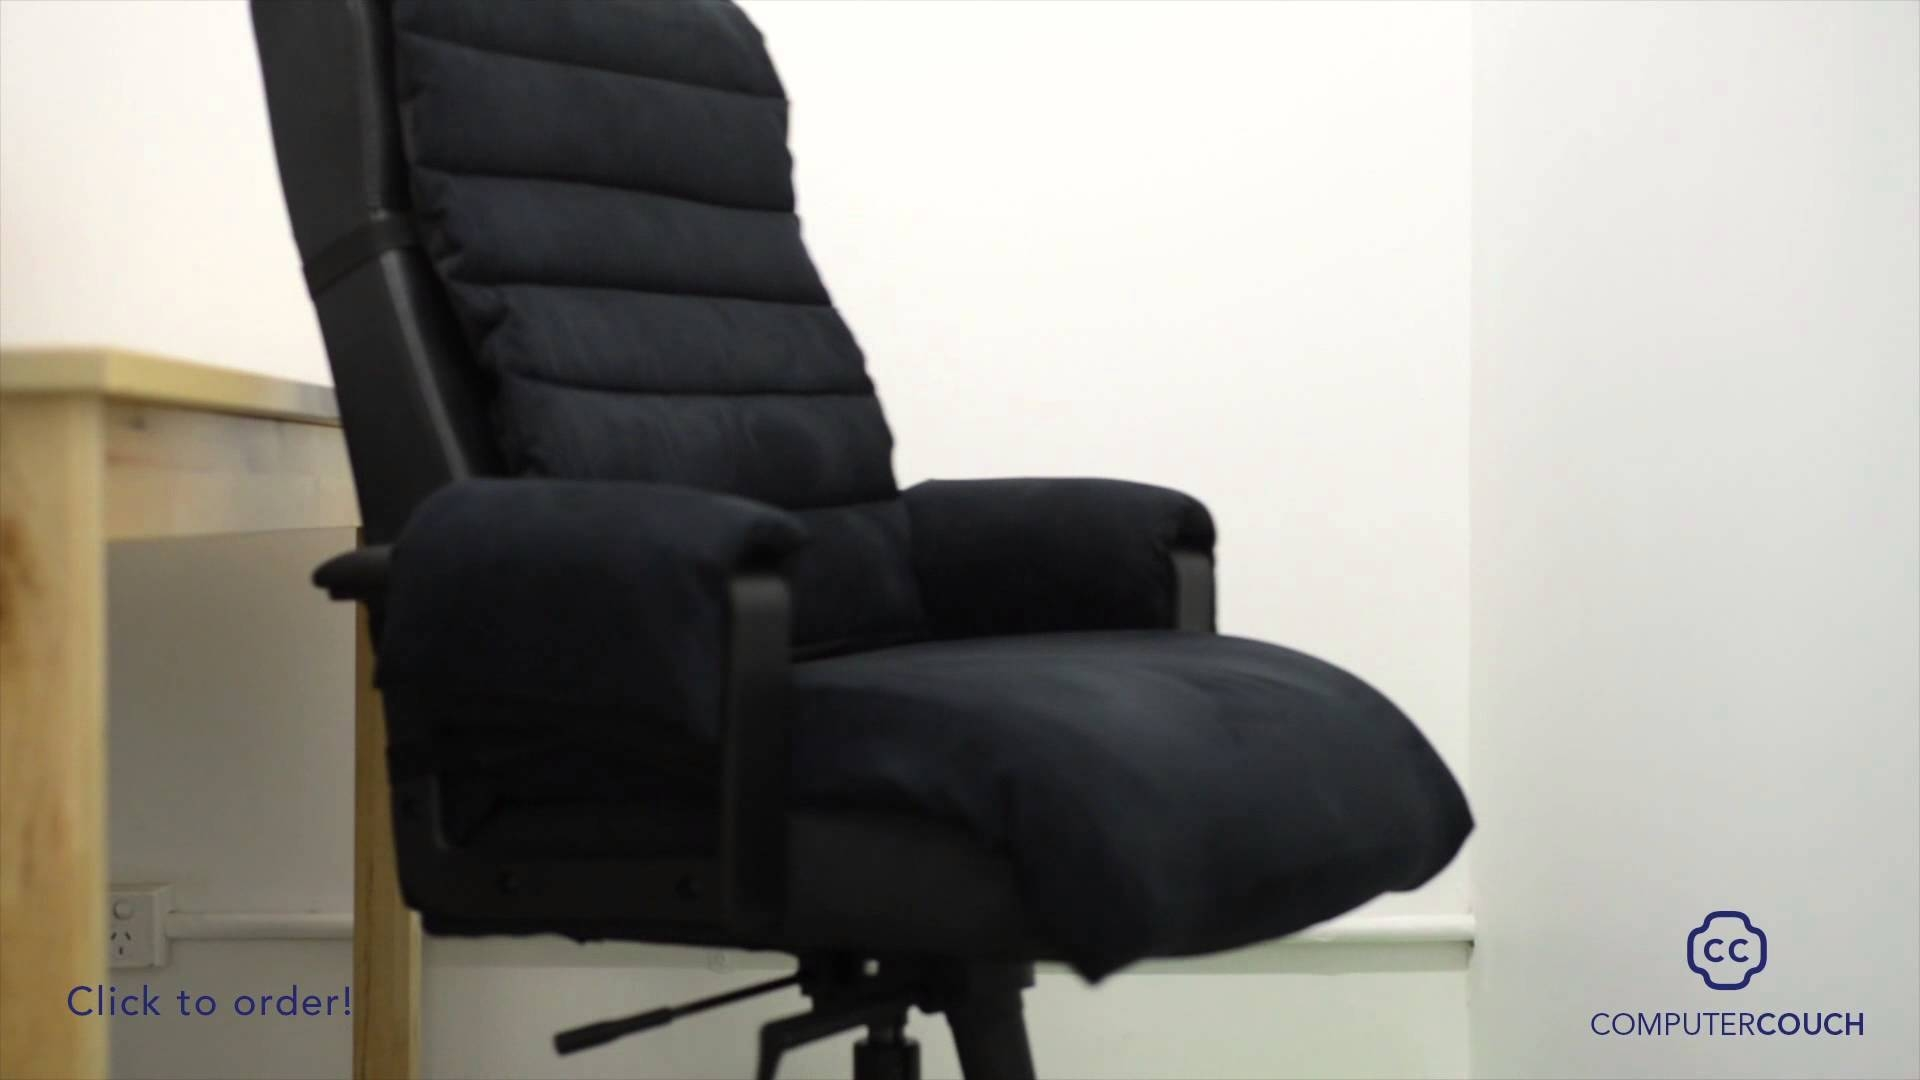 Office Sofa Chair 39 Ideas About Office Sofa Chair - Cryomats intended for Office Sofas And Chairs (Image 9 of 15)